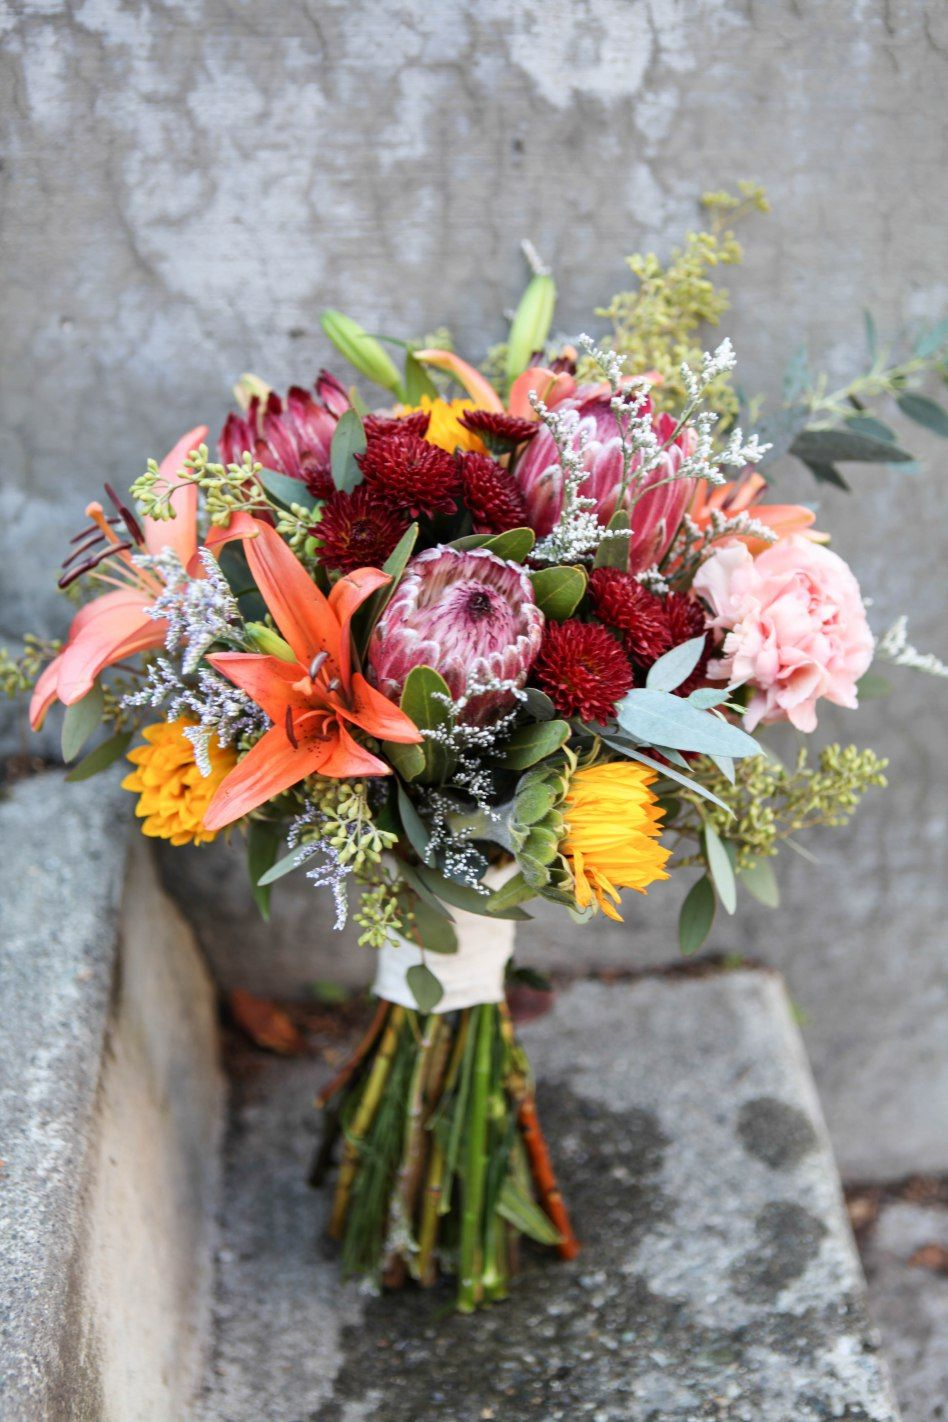 Rustic Wedding Bouquet Made With Protea Mini Sunflowers Orange Lilies Carnations Burgundy Button M Rustic Wedding Bouquet Protea Wedding Eucalyptus Bouquet